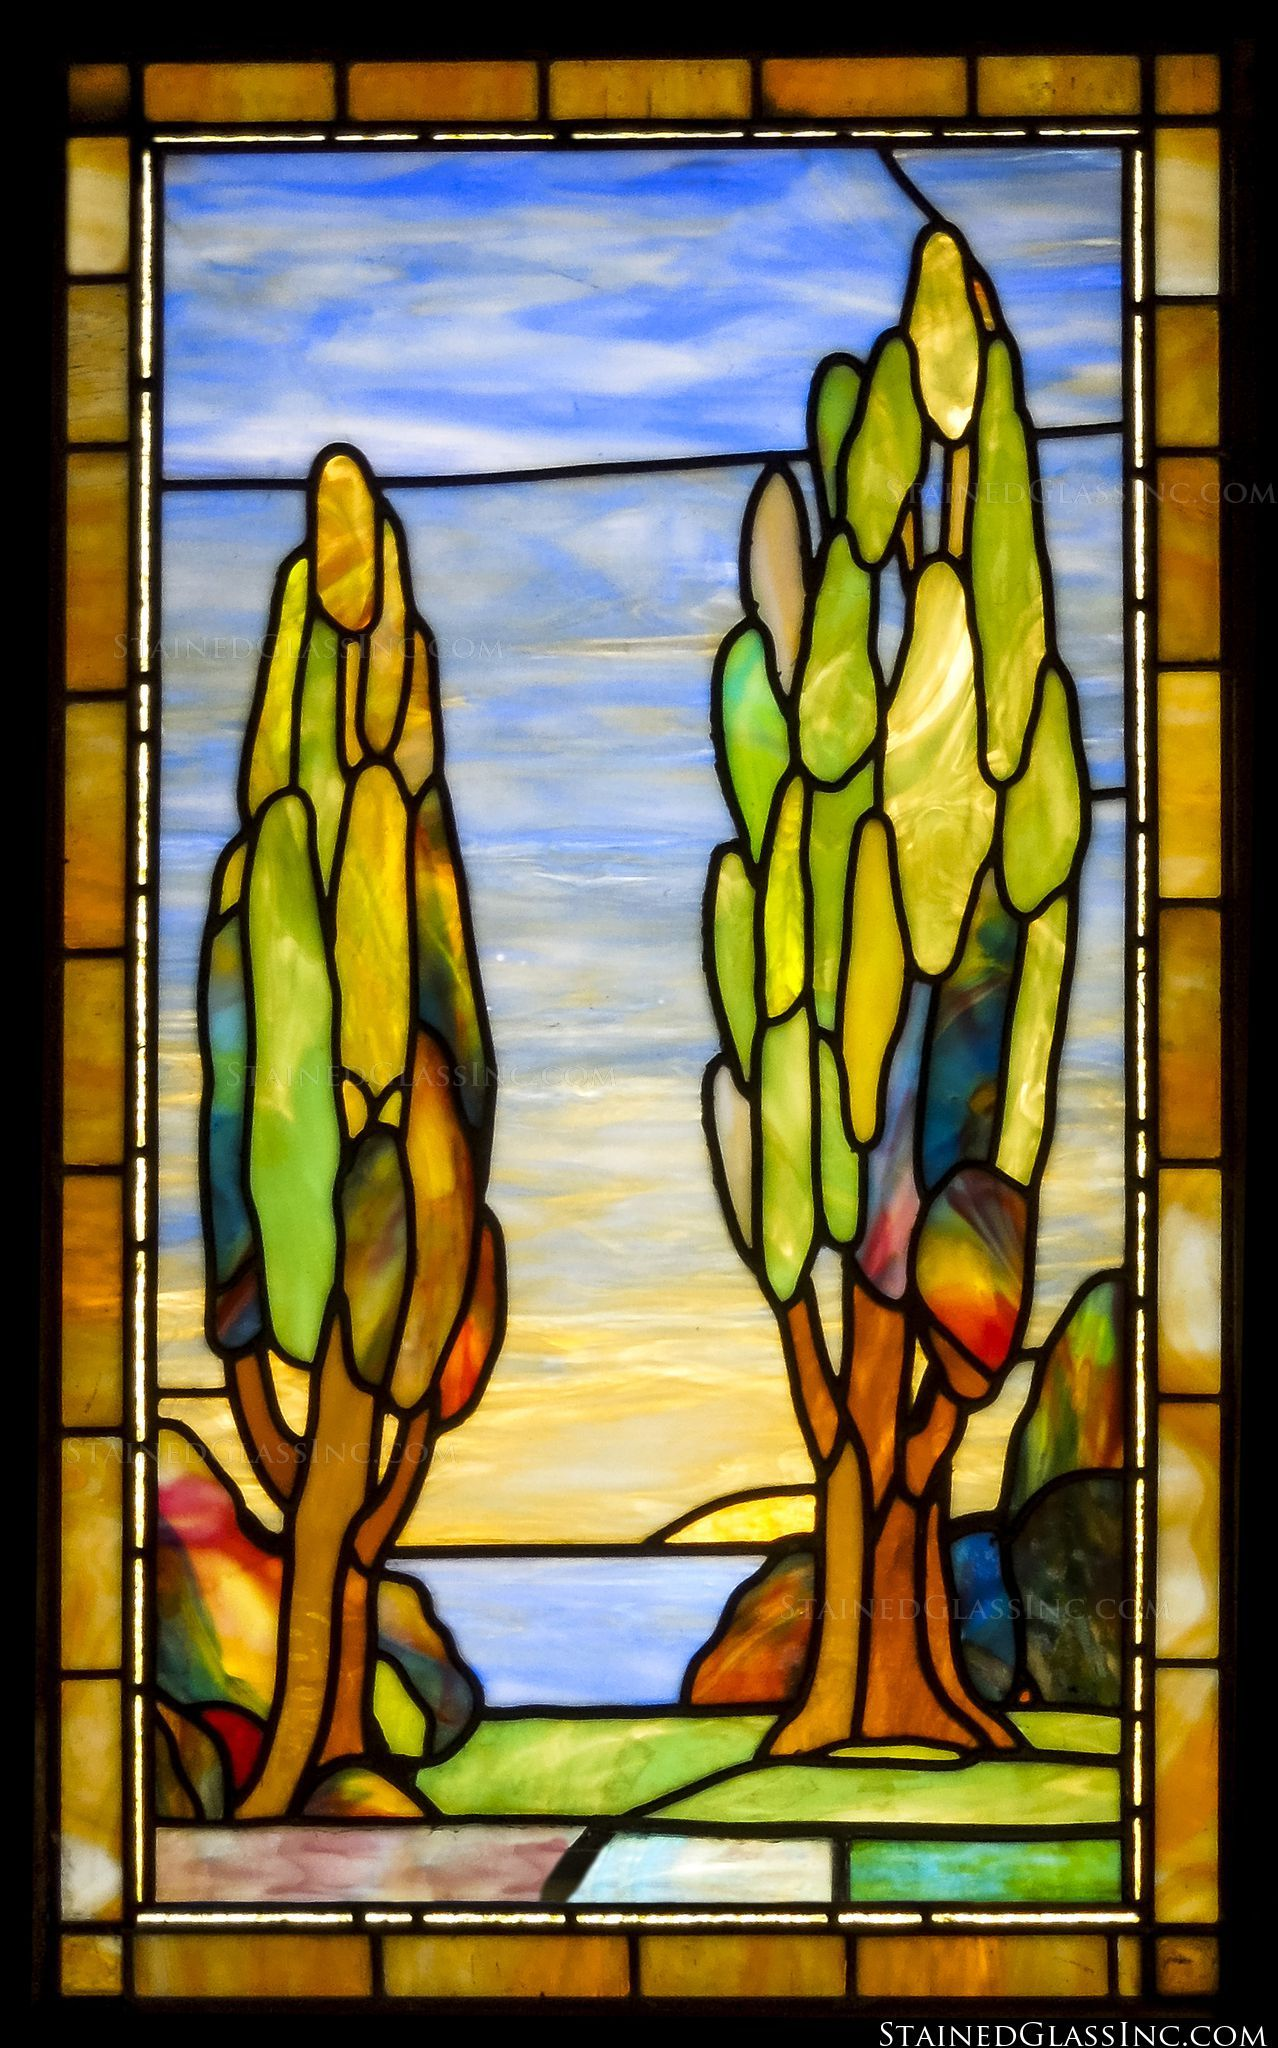 Landscape Beauty - 5336 - Stained Glass Inc